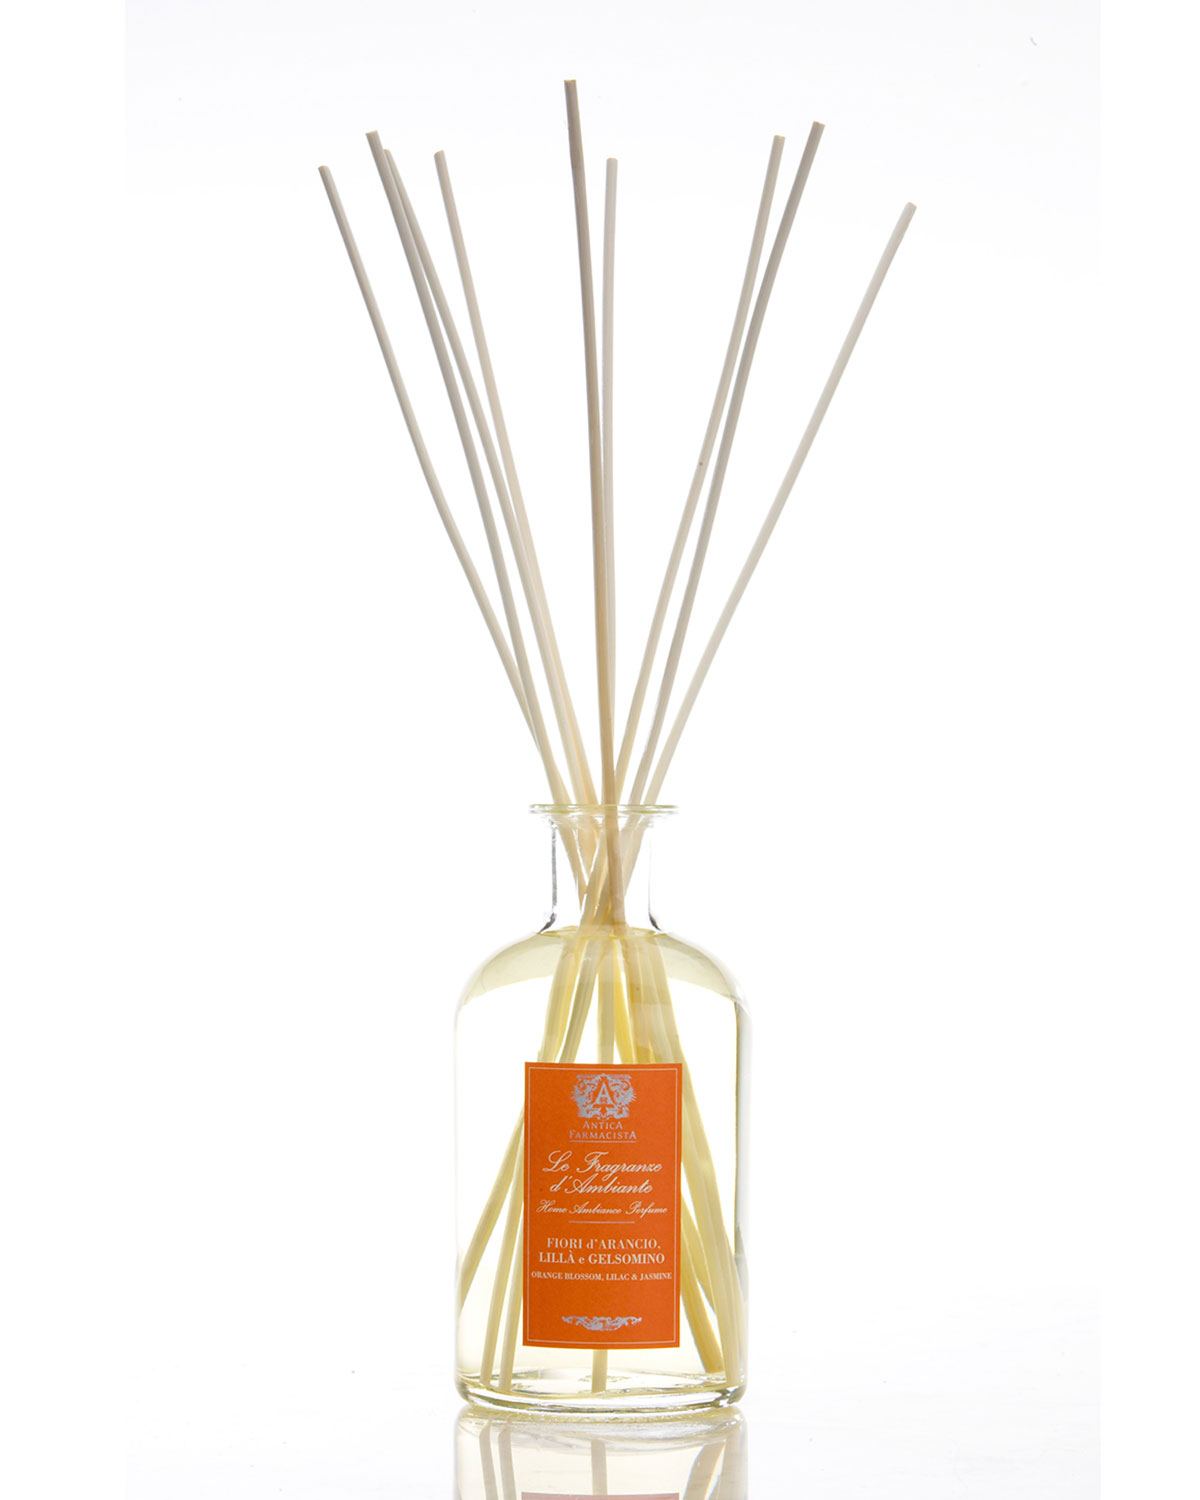 Orange Blossom, Lilac & Jasmine Home Ambiance Fragrance, 17.0 Oz./ 500 M L by Antica Farmacista